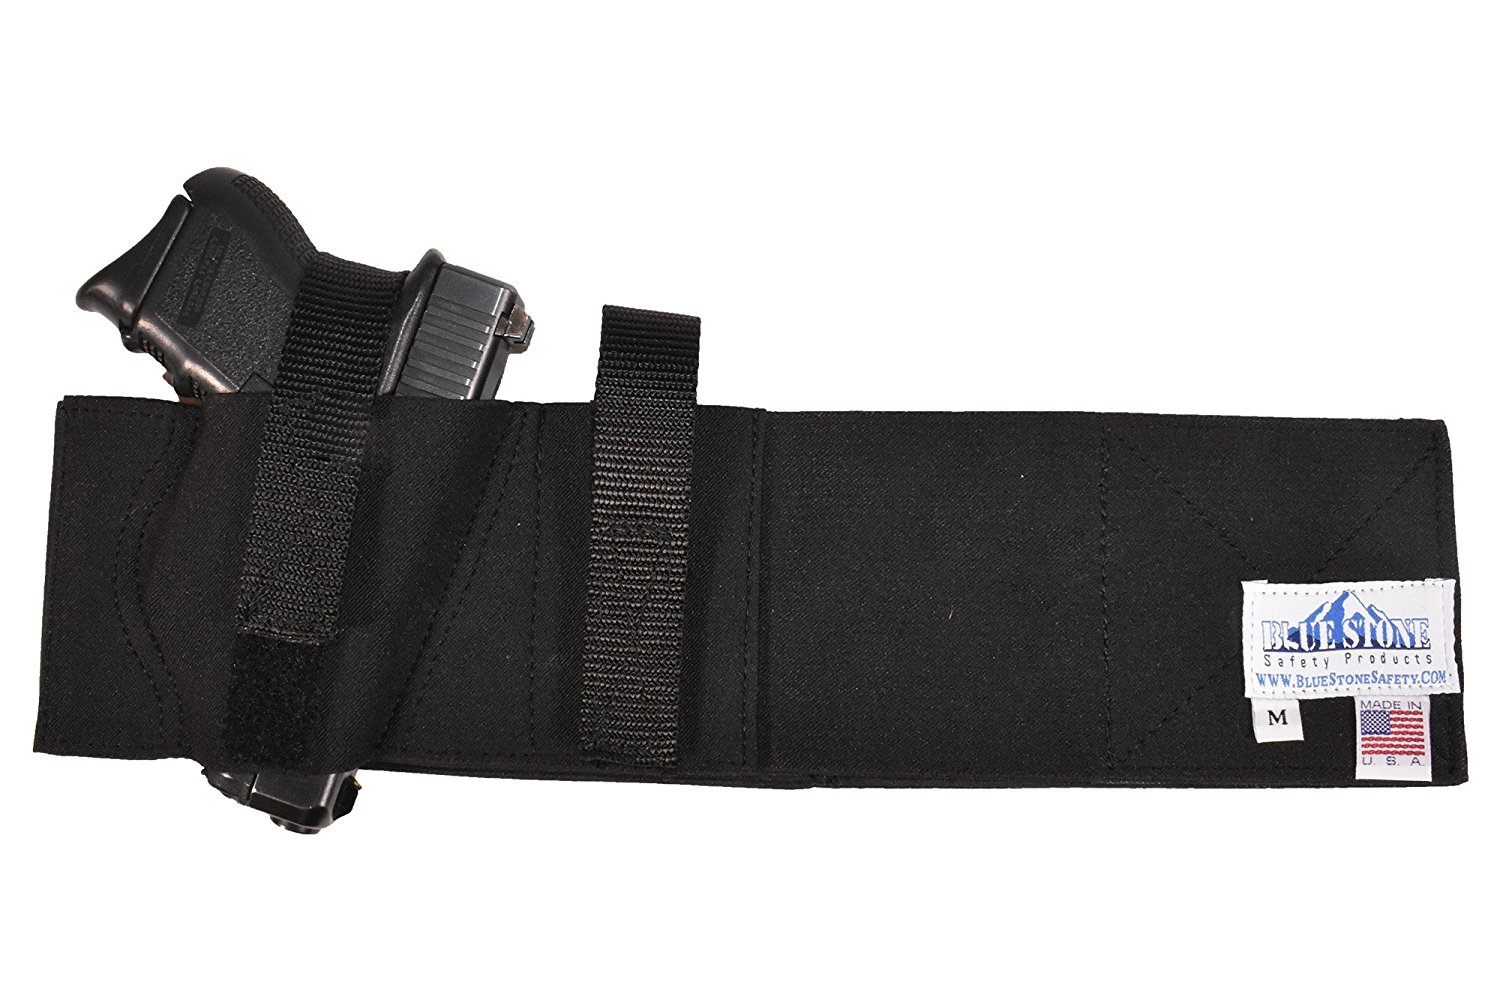 Concealed Carry Belly Band Holster| Belly Band Gun Holster| Belly Band Holster|Fits Glock 17, Glock 19, Glock 21, Glock 22, Glock 23, Glock 26, Glock 27, Glock 42, Glock 43, and Smaller Glock Models, S&W Shield, S&W M&P, and Similar sized Handguns, Sig Sauer, p220, p226, p228, p229, p239, p250,